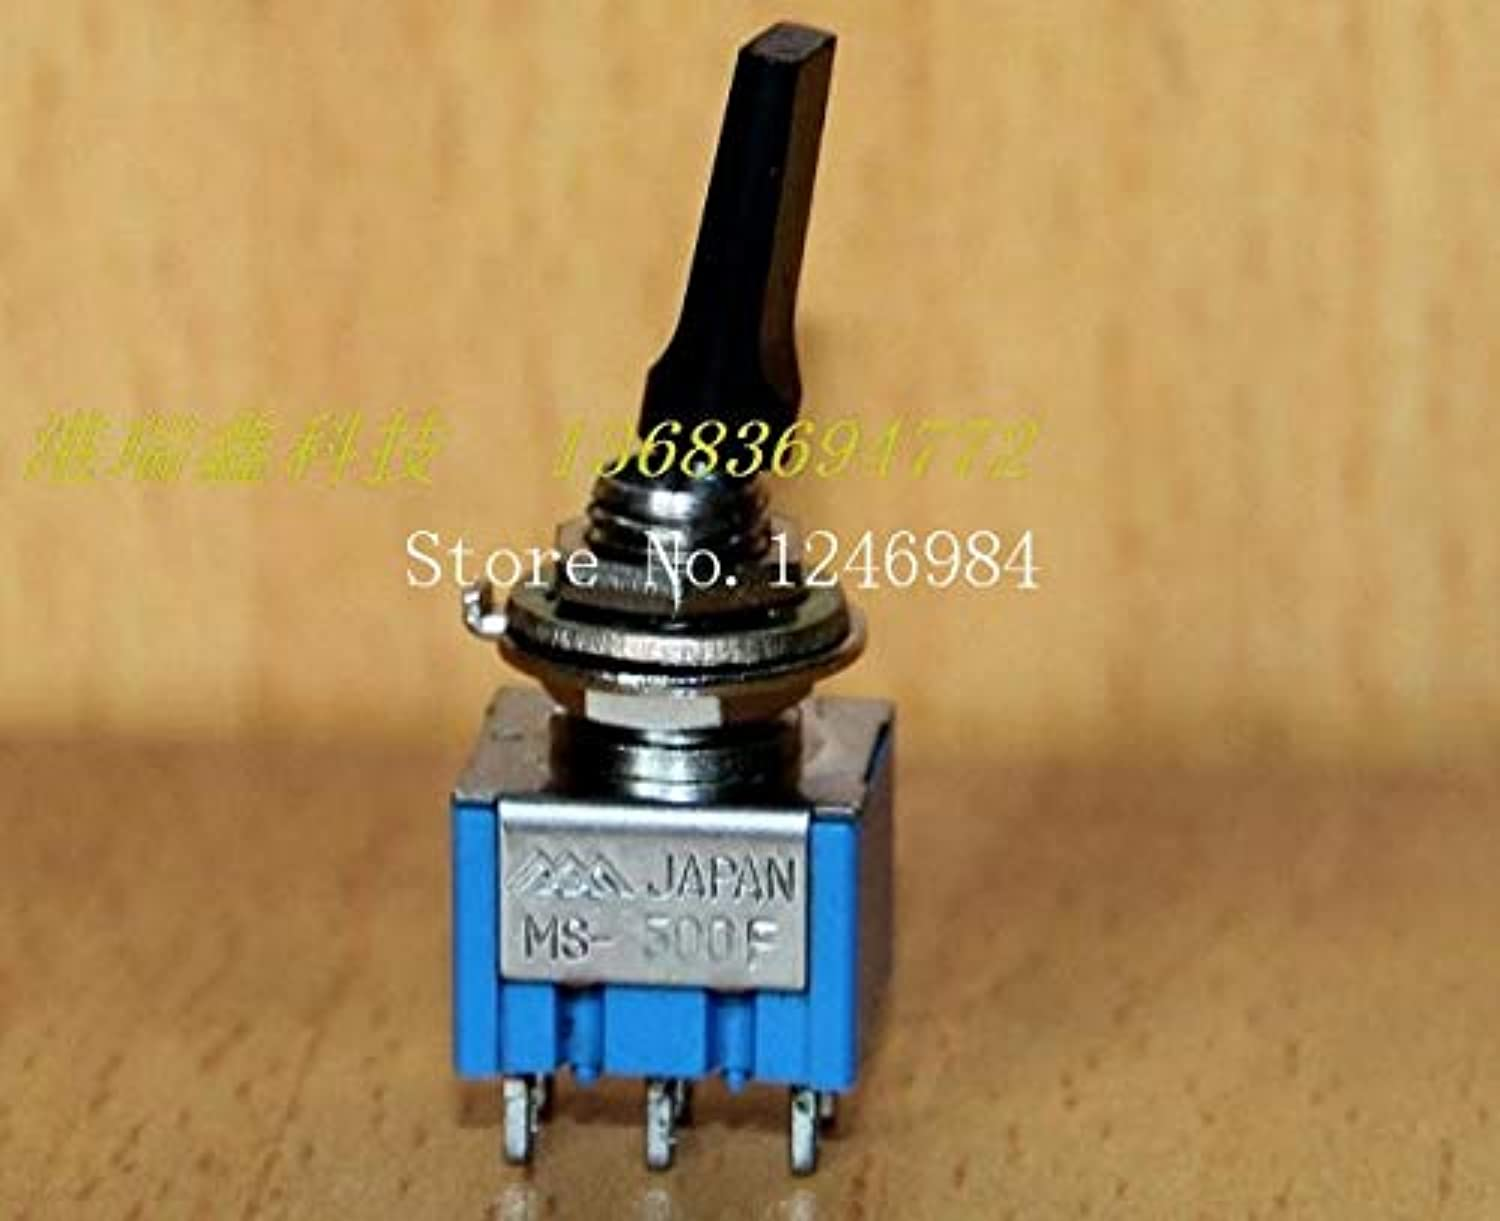 [SA]Dual six Foot Two tranches M6.35 Black Flat Handle Small Toggle Switch Japan Three Mountain Overstock MS500-F { }-20pcs lot